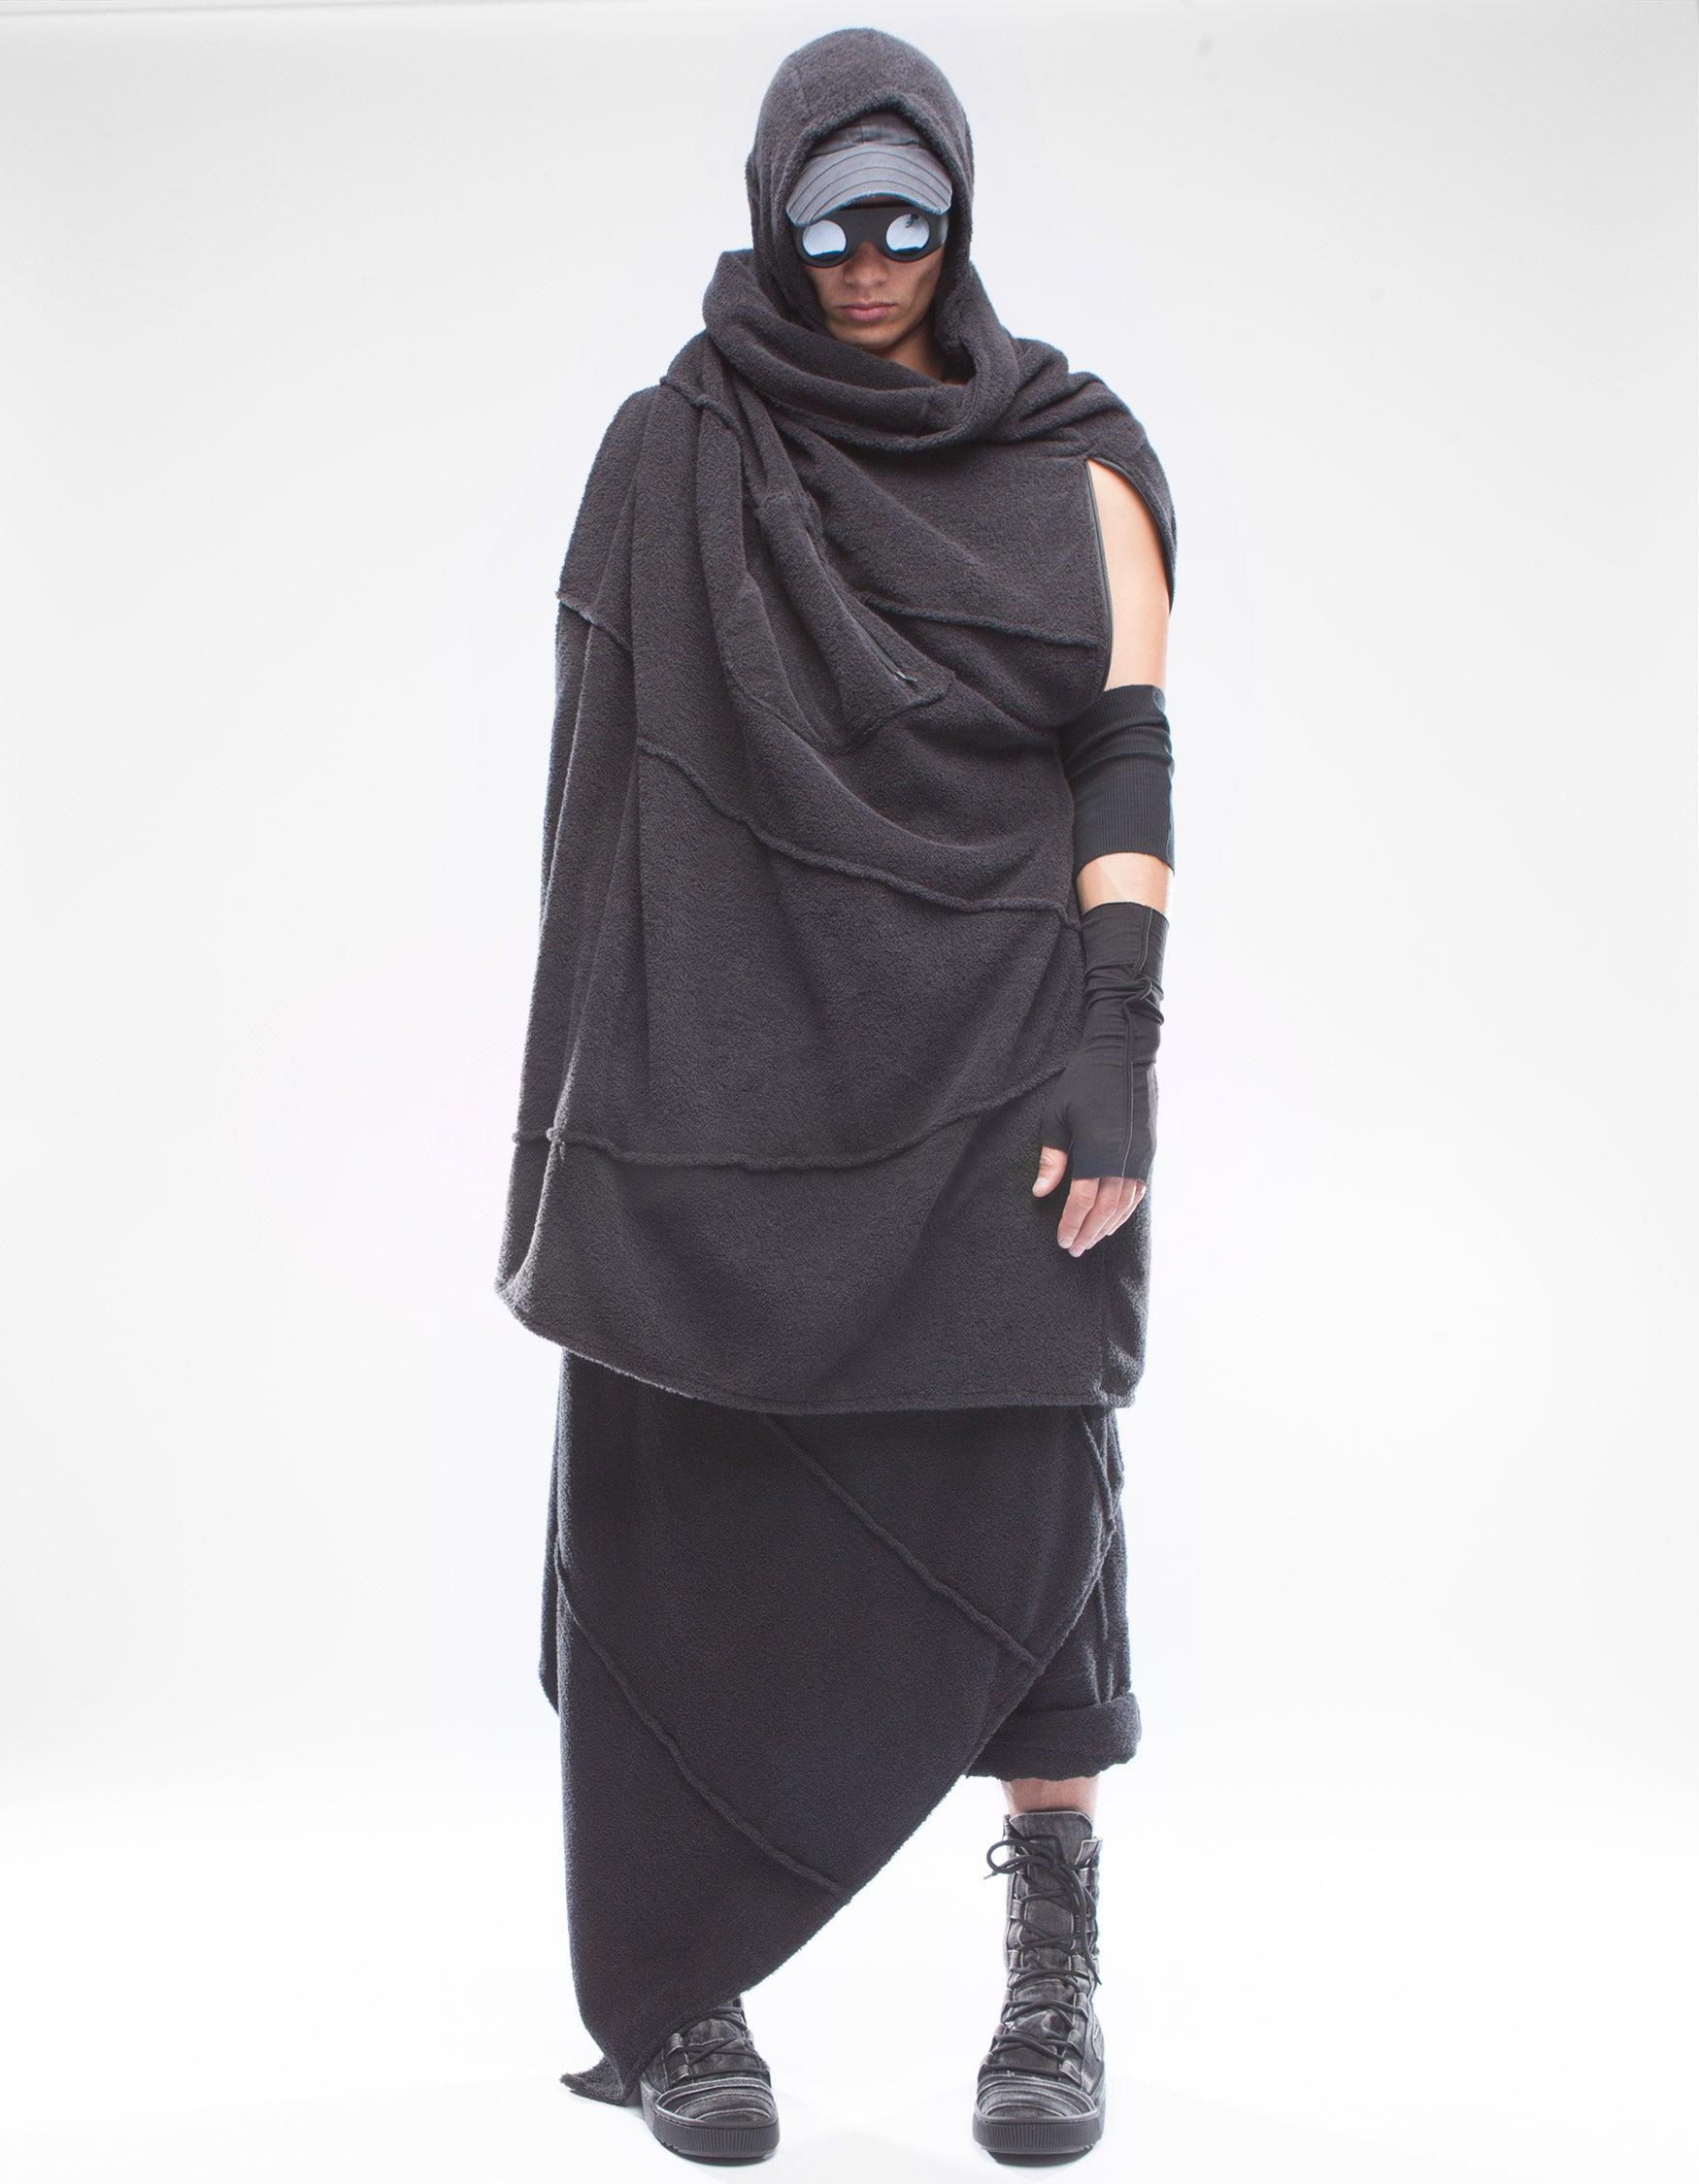 BIG CLOTH PURITY BLACK